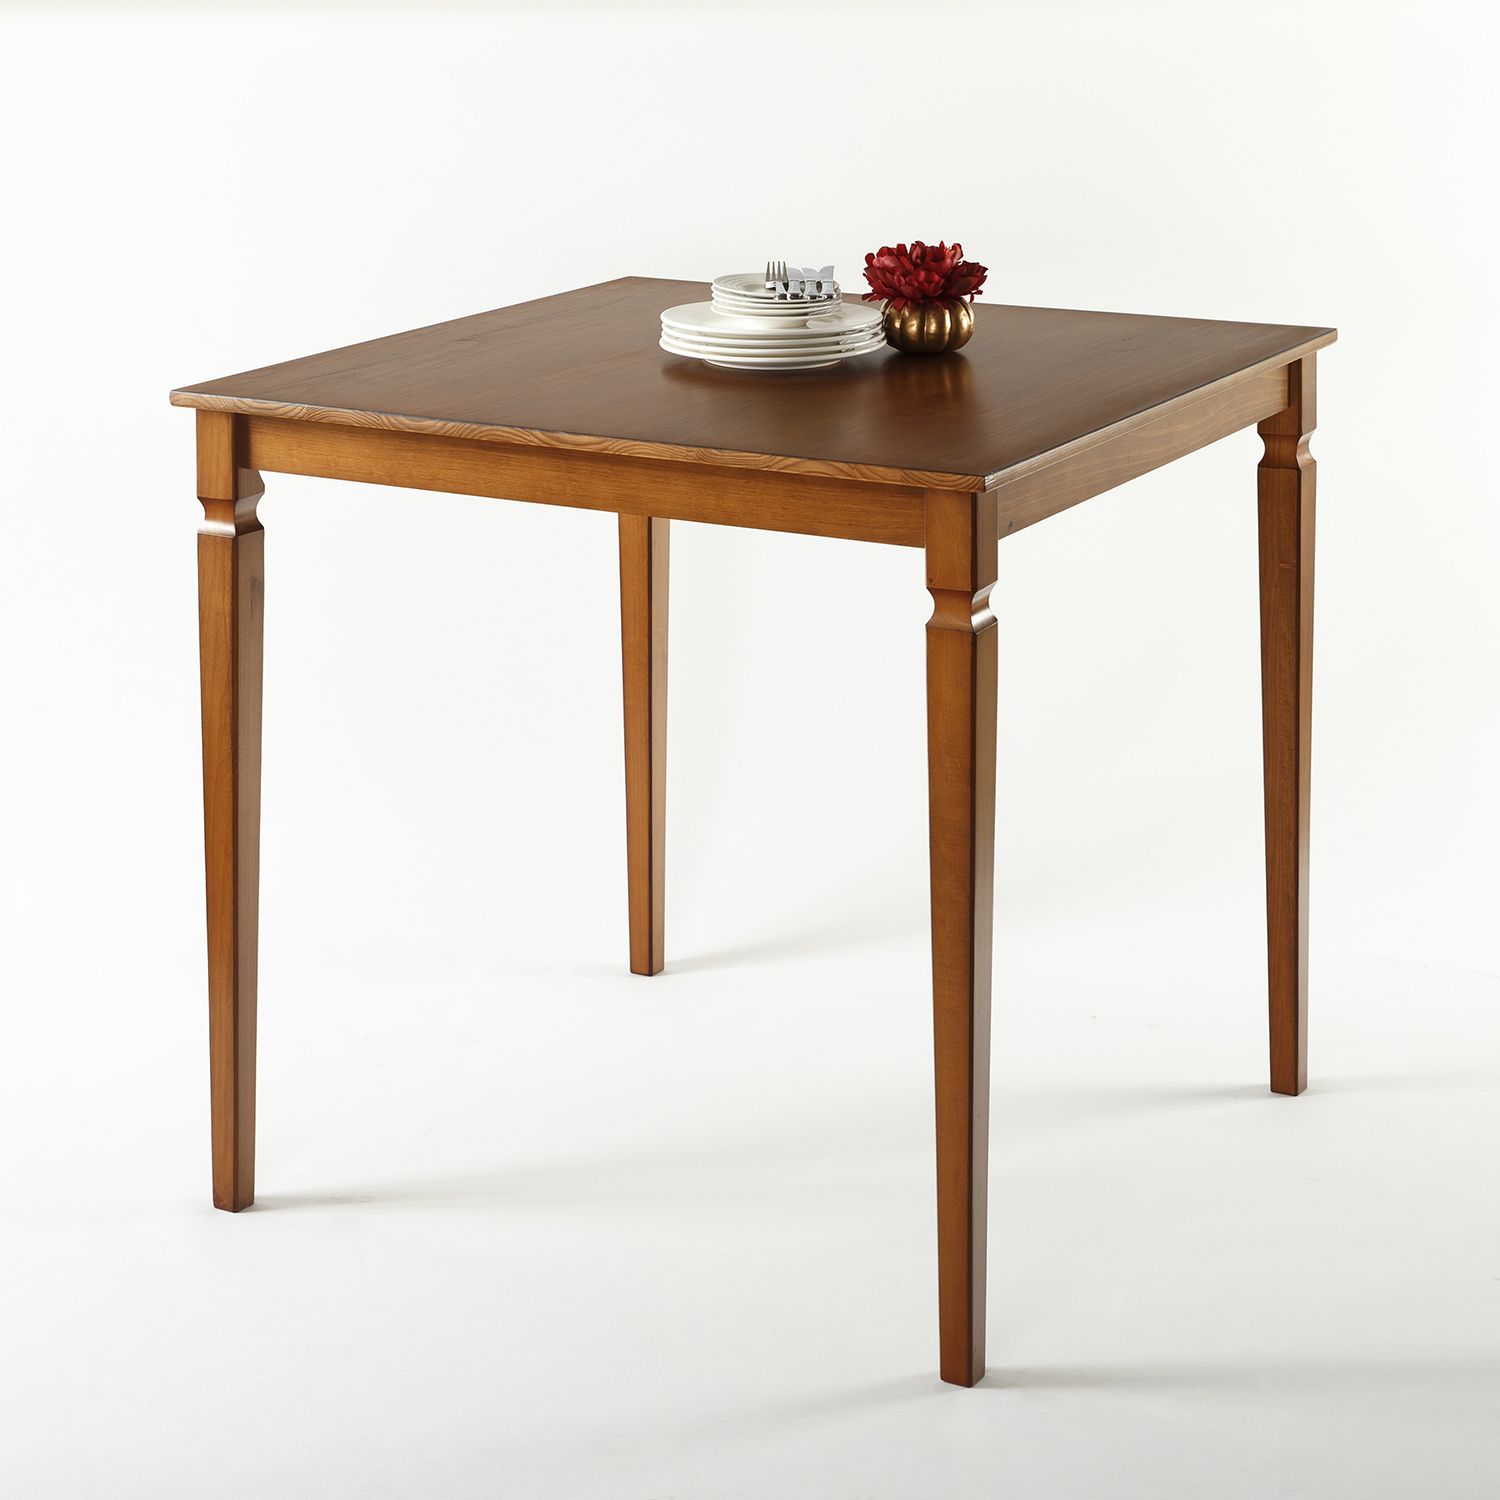 Zinus Drury Counter Height Square Wood Dining Table Inside Latest Mcmichael 32'' Dining Tables (View 8 of 15)